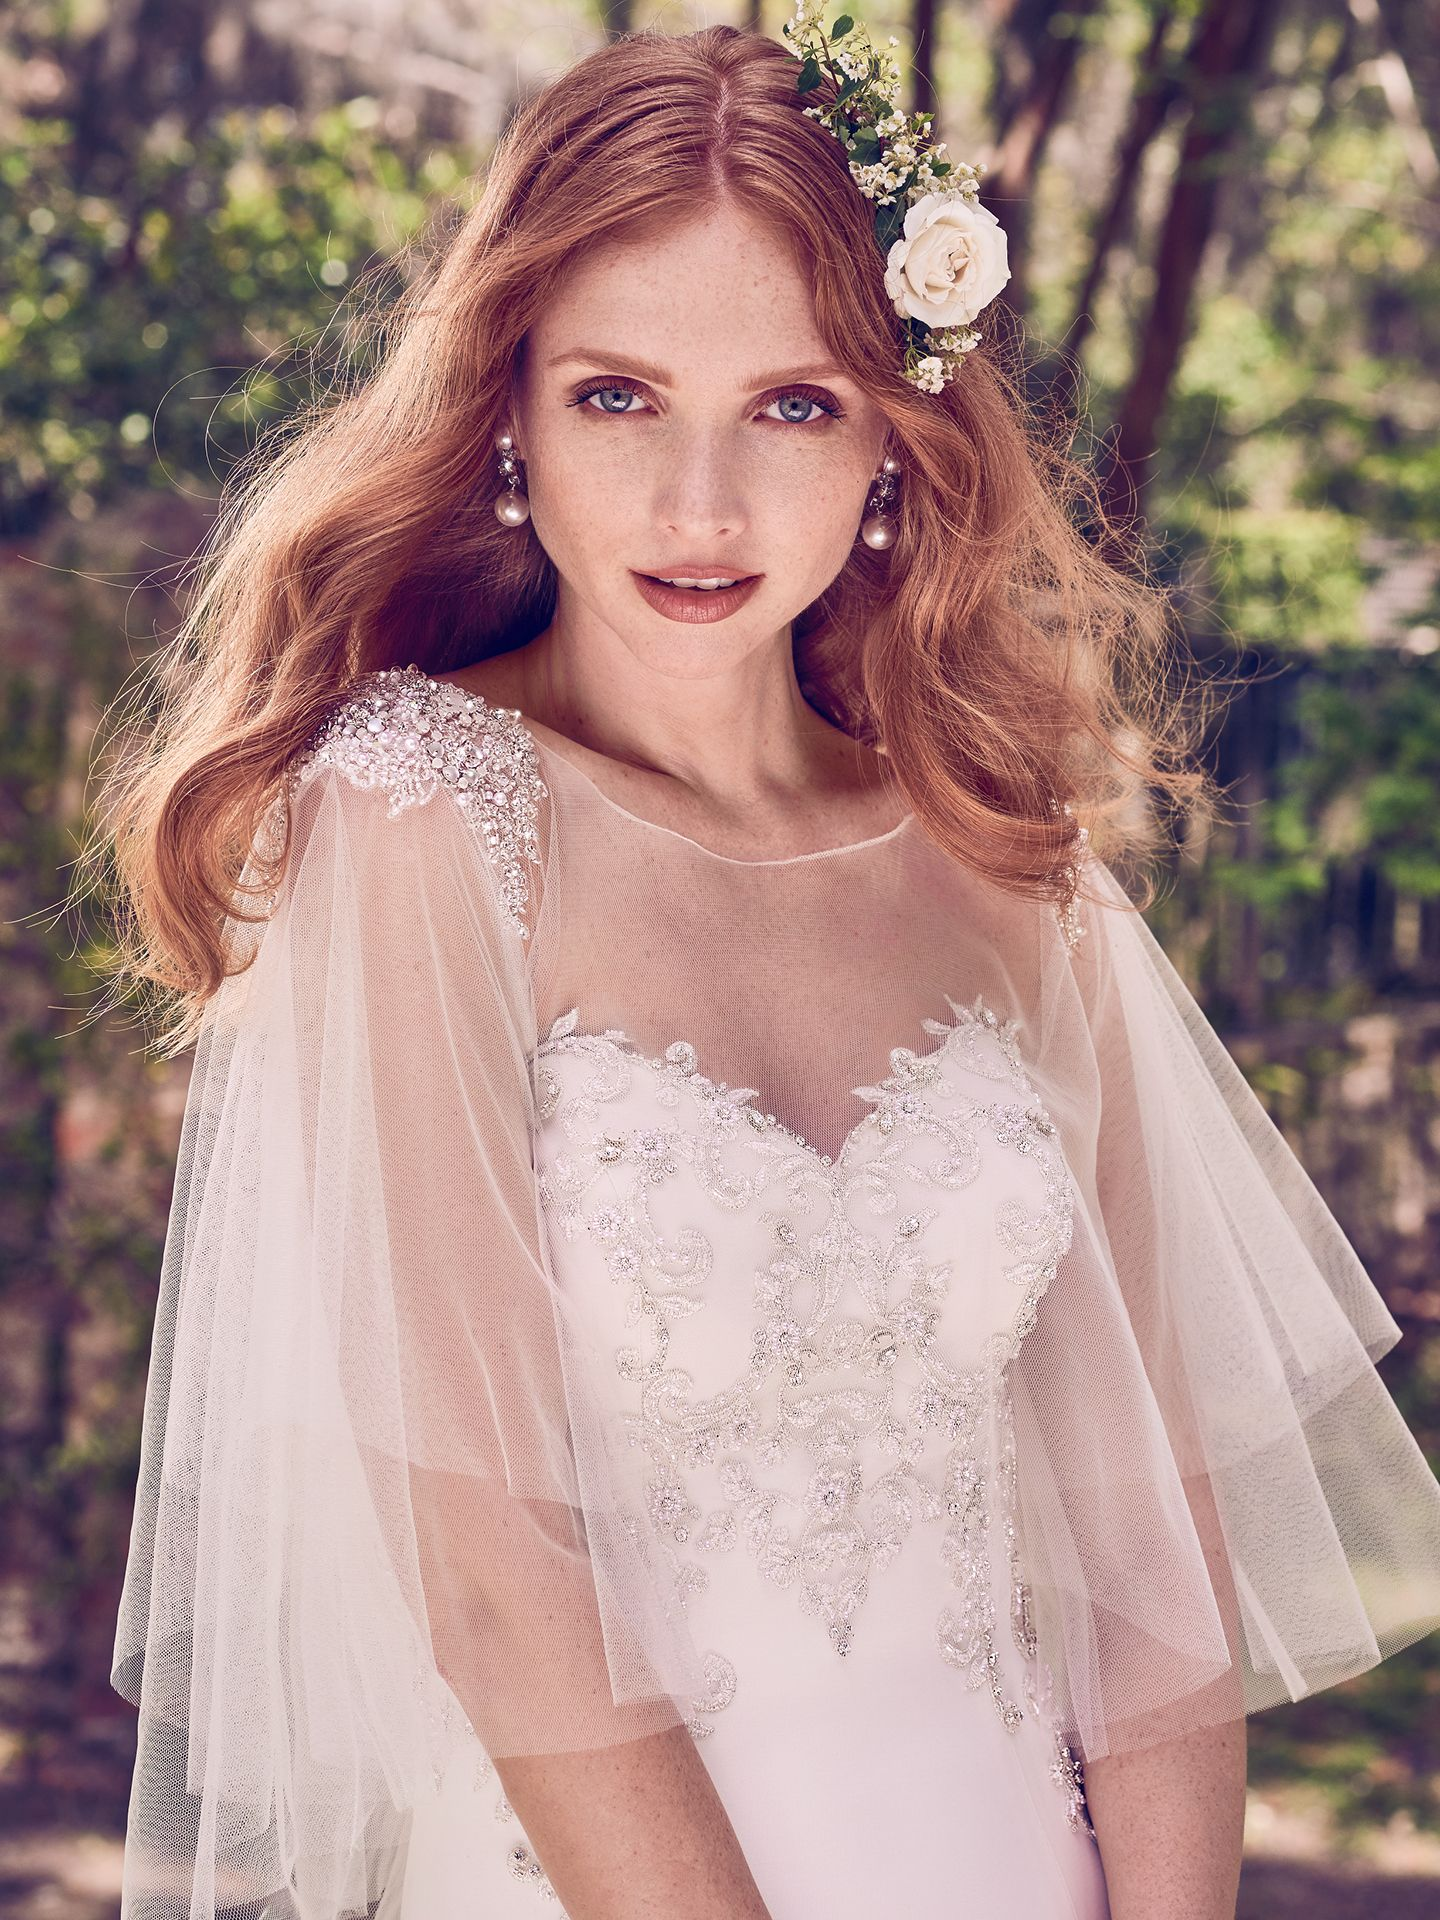 It\'s Engagement Season 2018—Here are the Latest Wedding Dress Trends ...